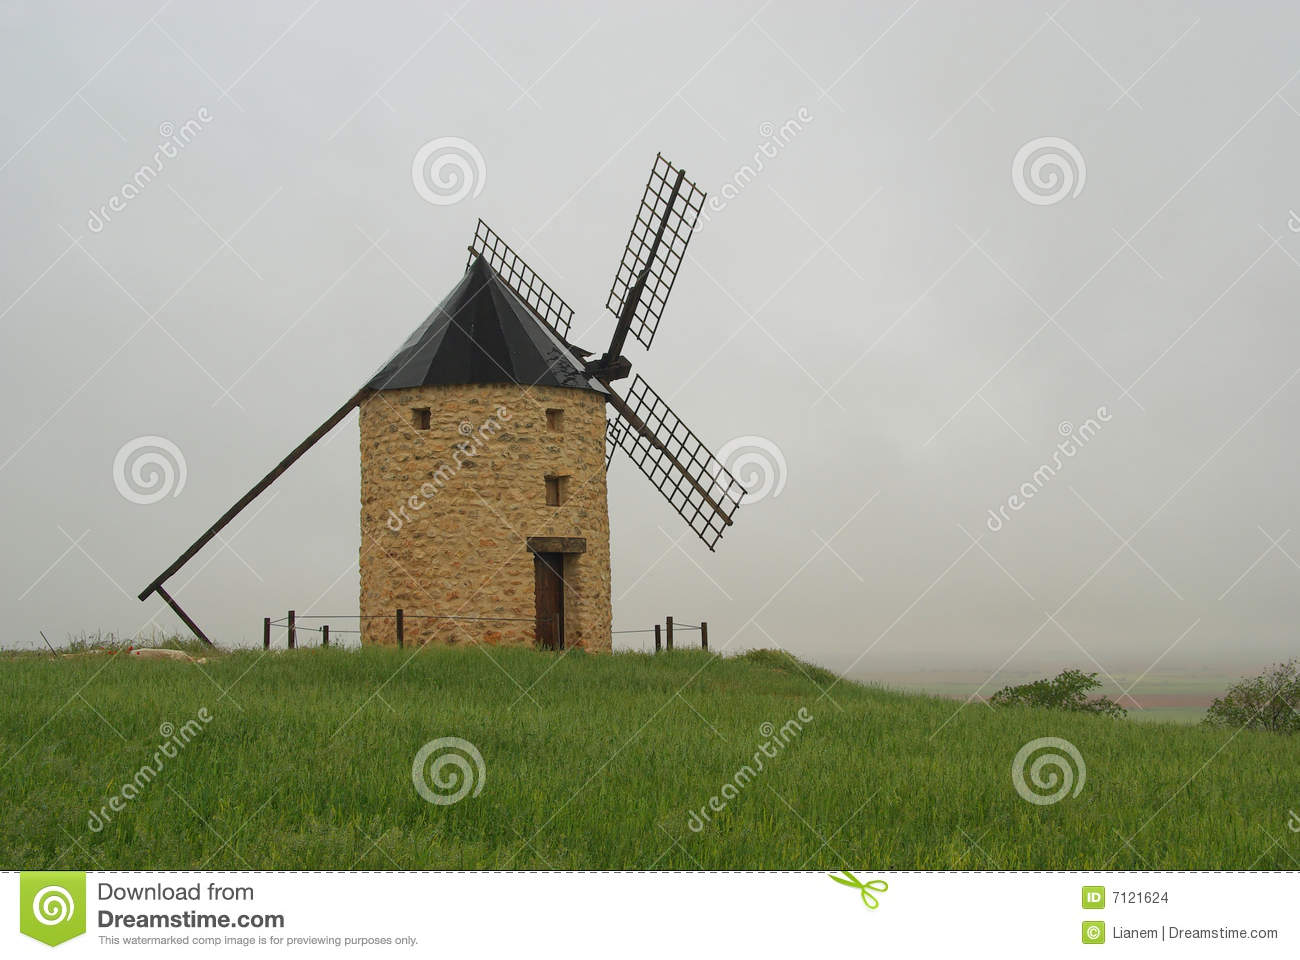 Belmonte windmolen